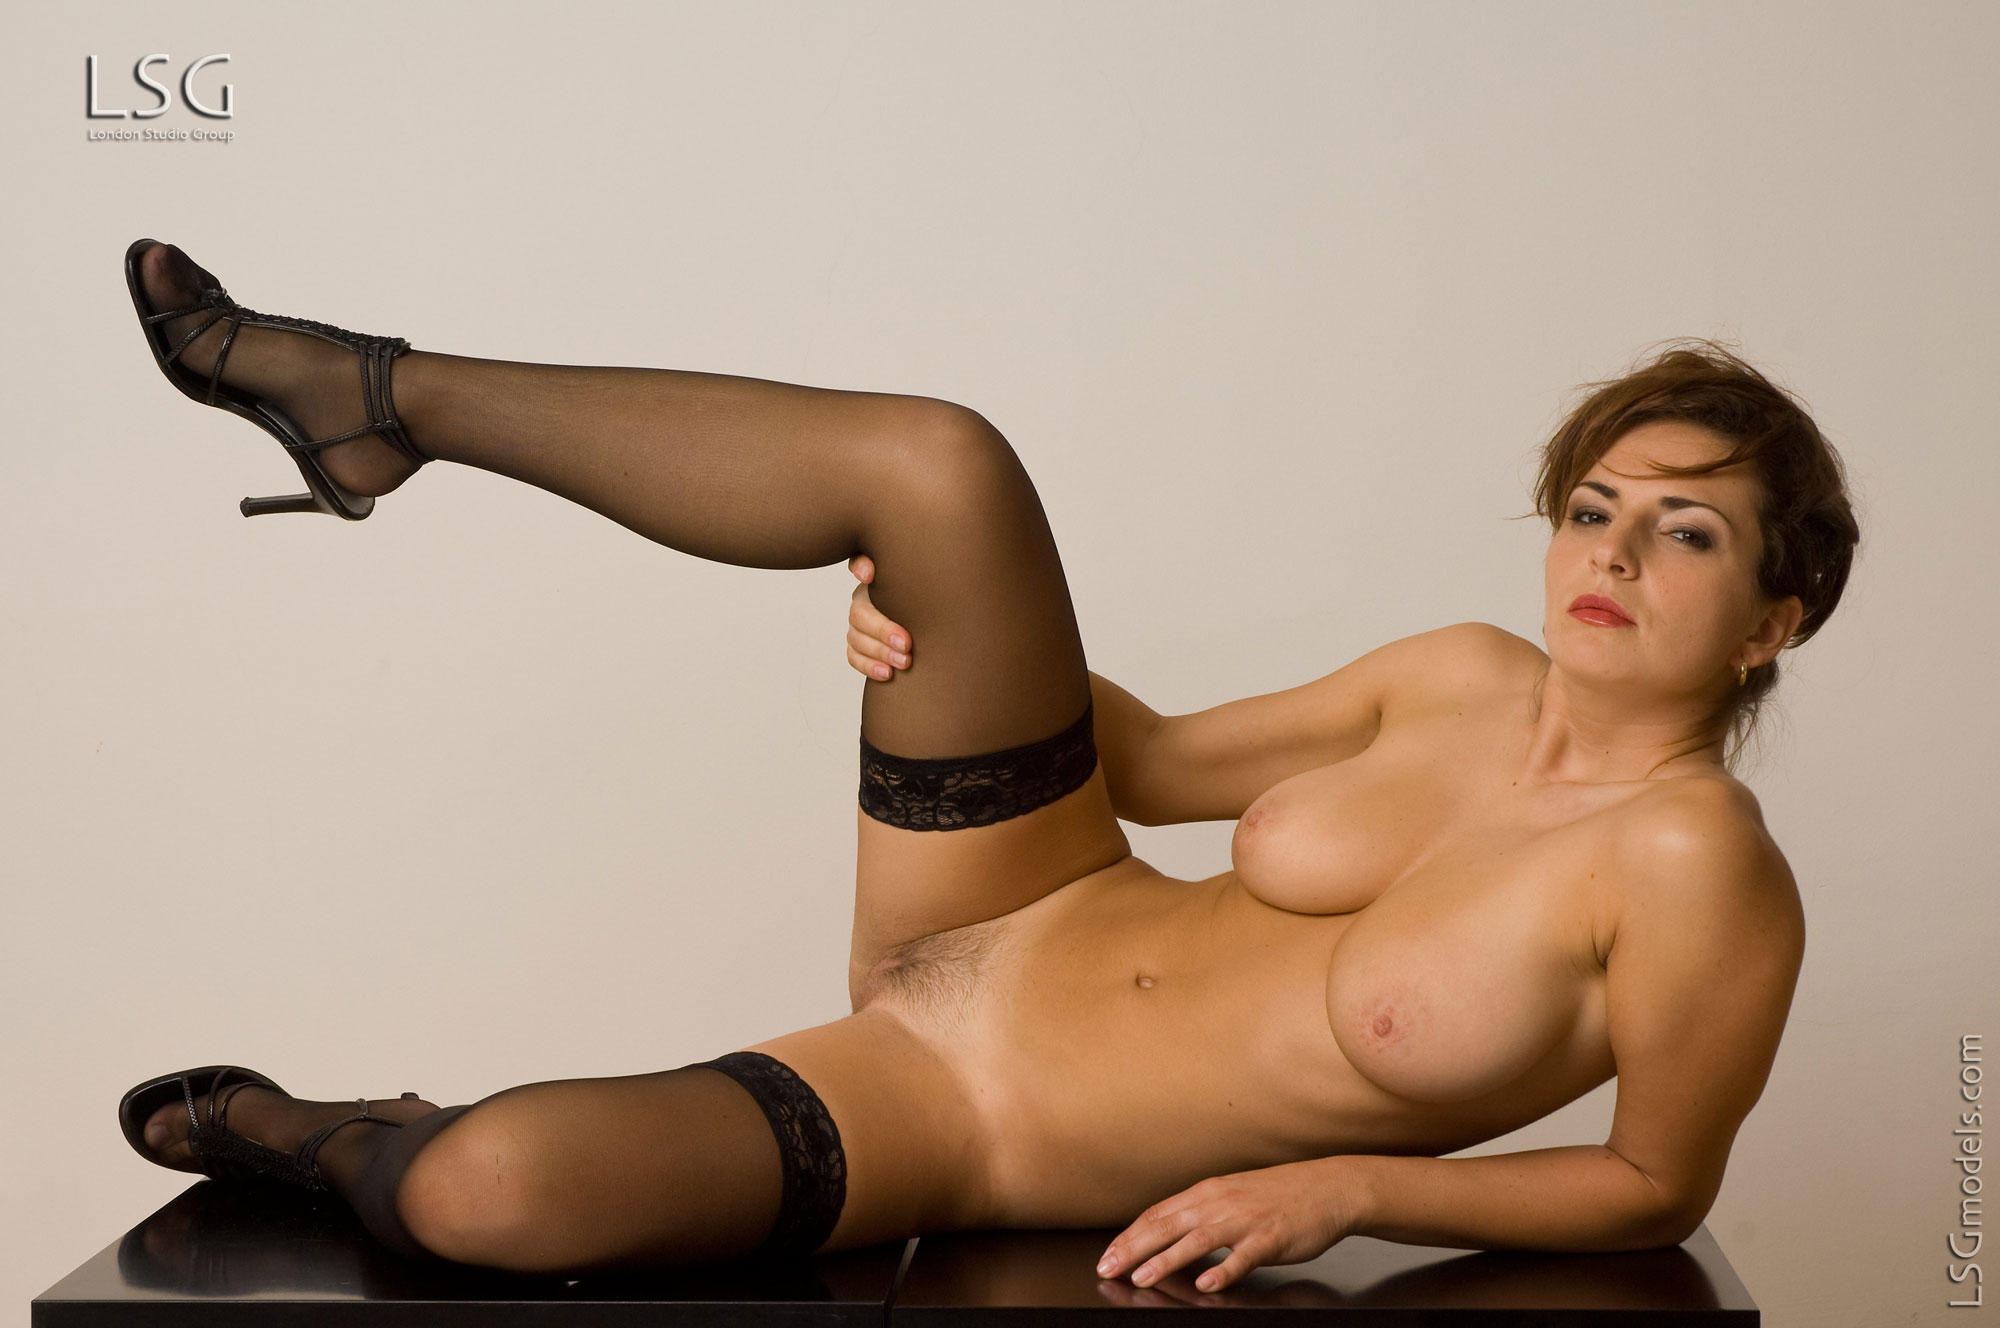 Black Stockings Jpg 3 Sara Black Stockings Jpg 4 Sara Black Stockings